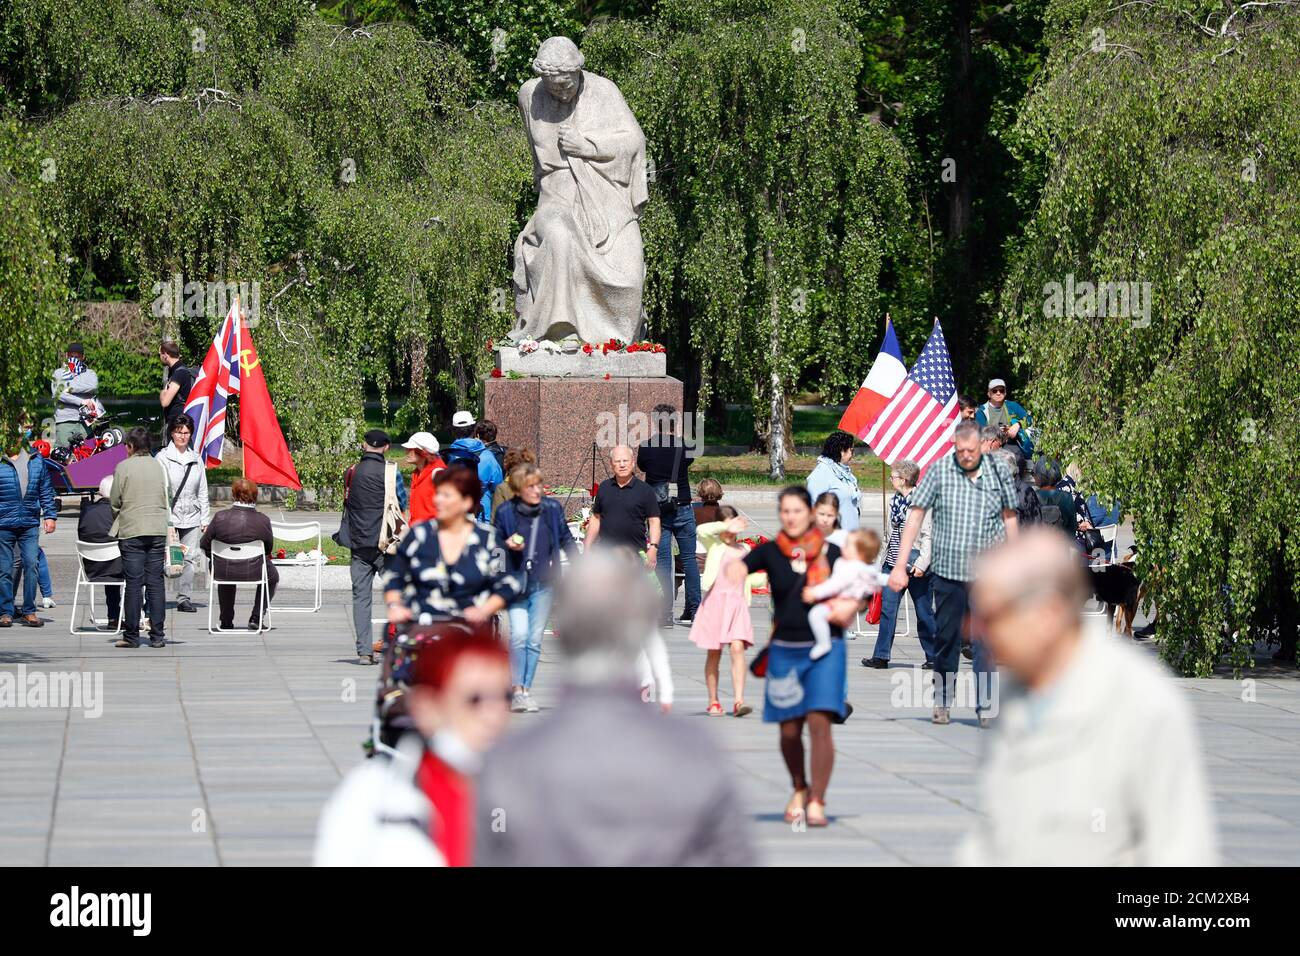 People gather at the Soviet War Memorial at Treptower Park, to mark Victory Day and the 75th anniversary of the end of World War Two, in Berlin, Germany, May 8, 2020. REUTERS/Fabrizio Bensch Stock Photo